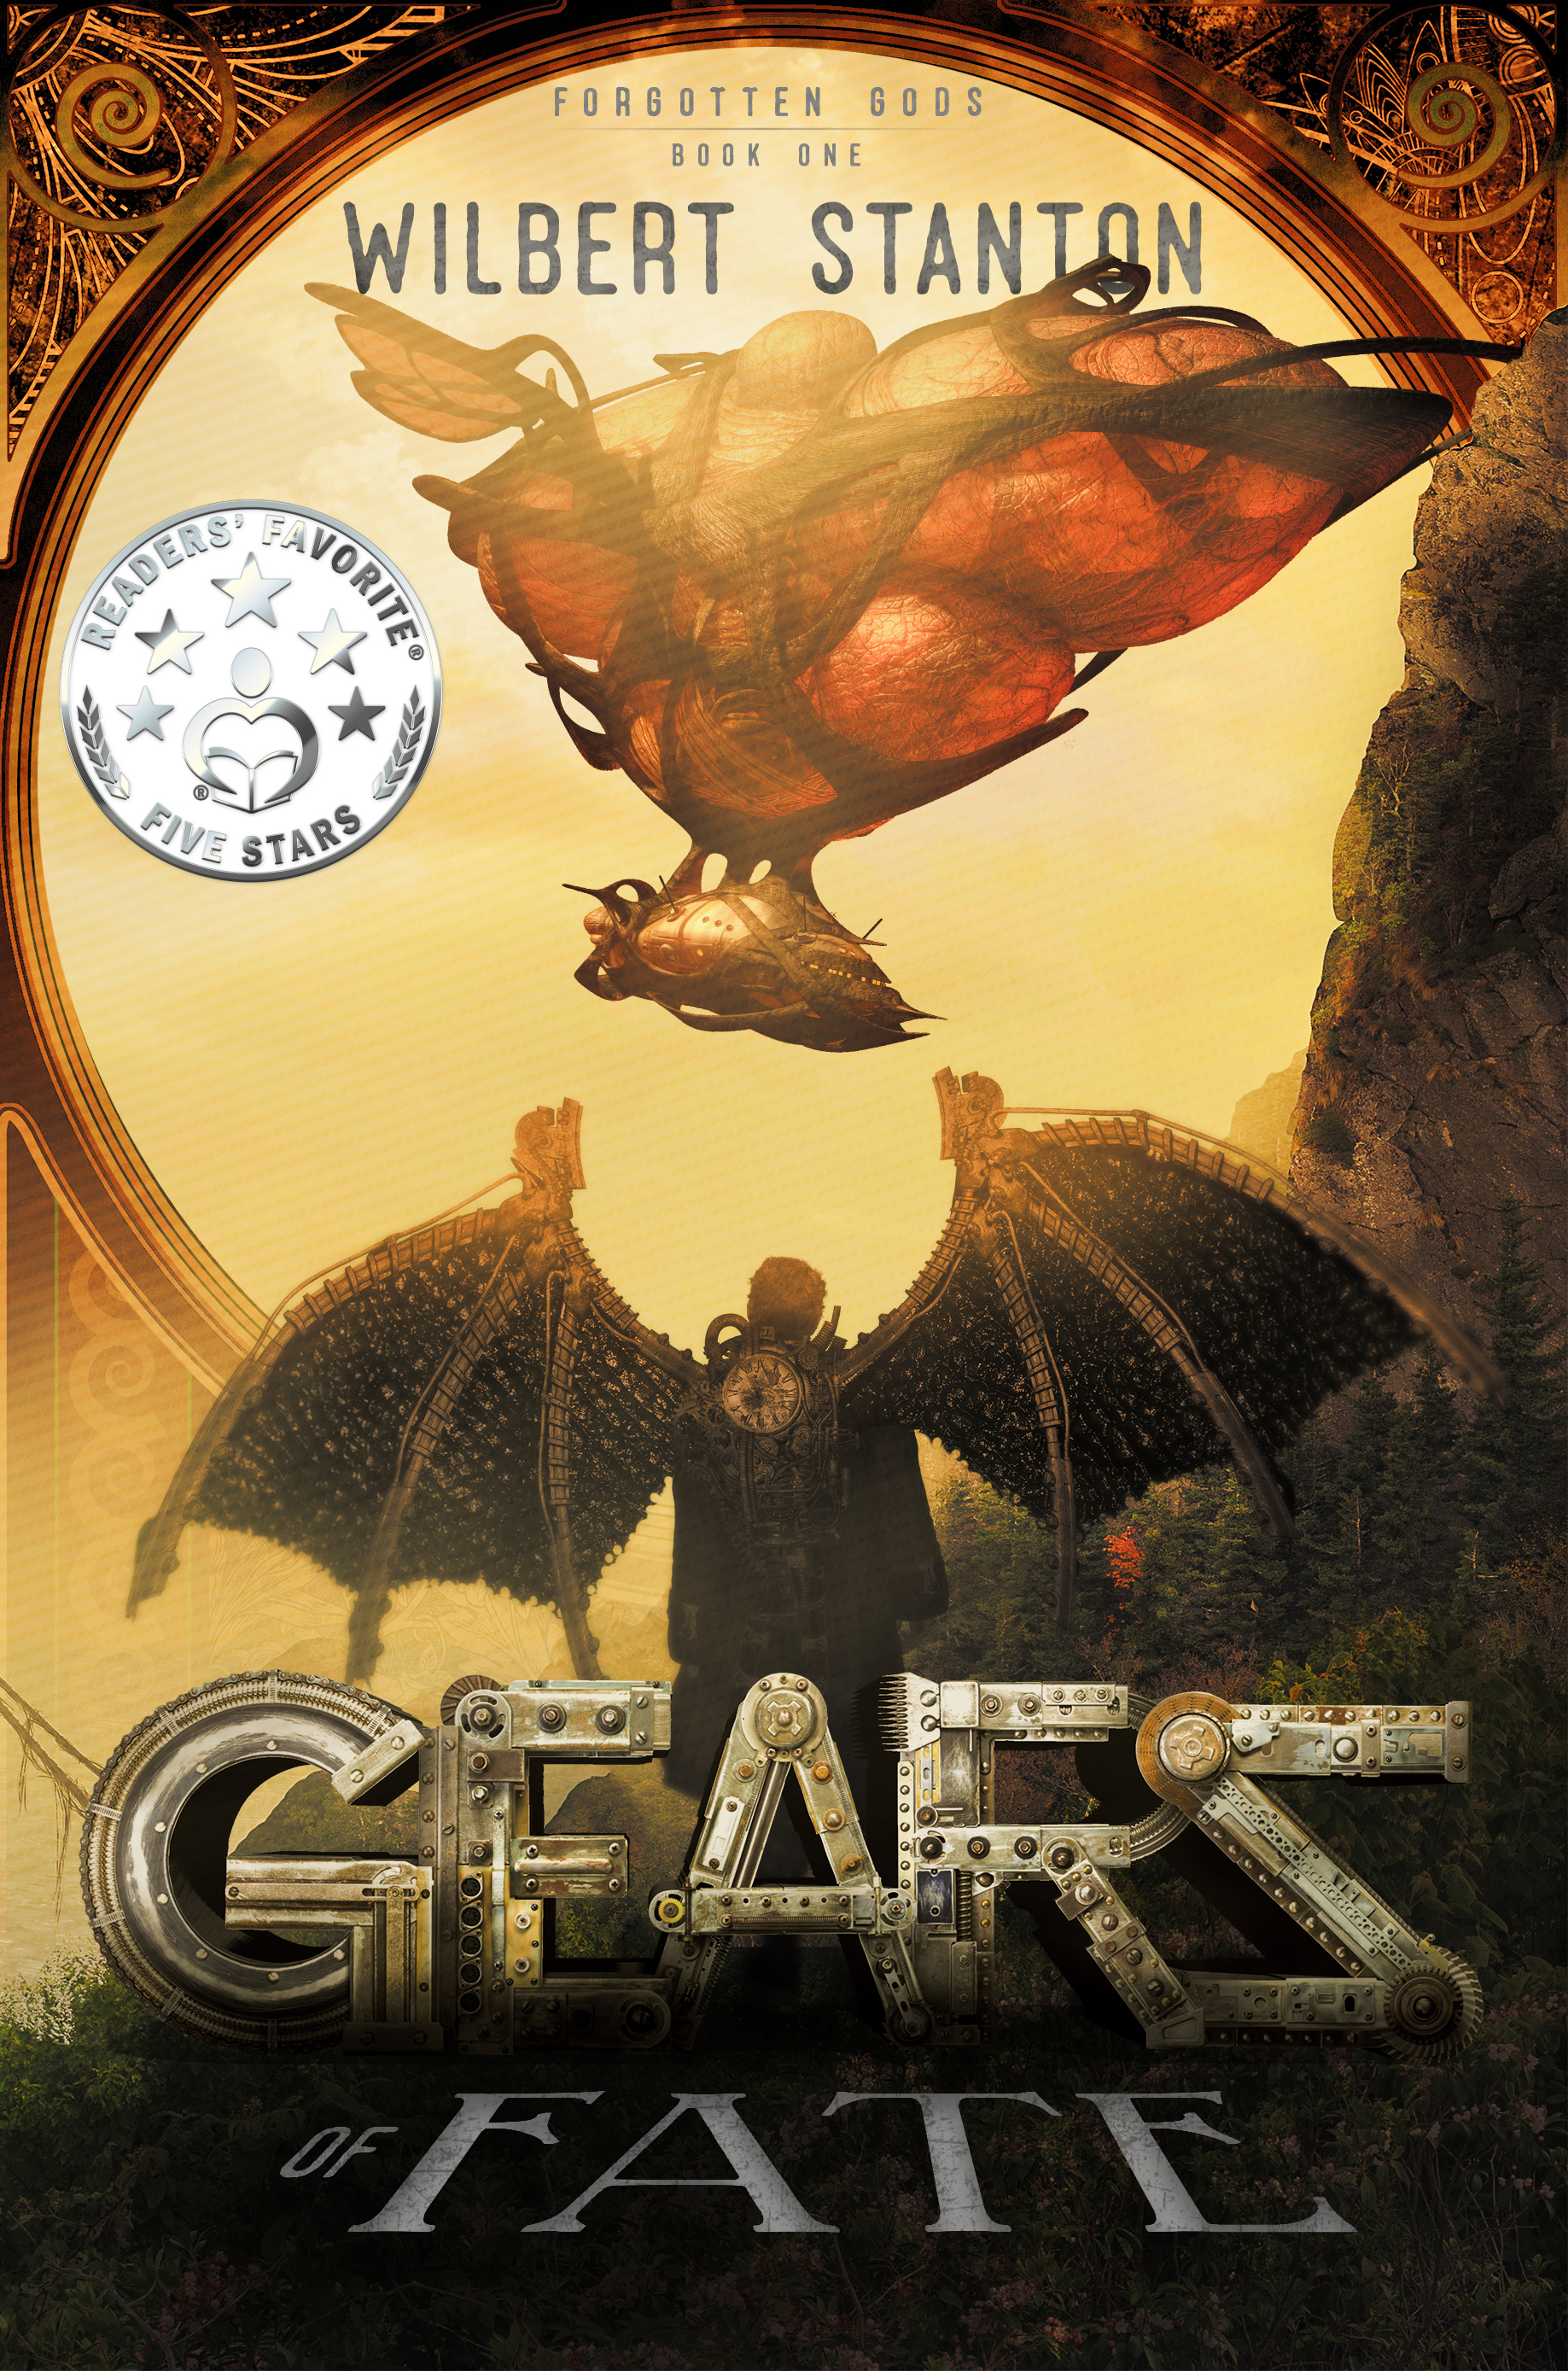 Gears of Fate - Centuries have passed since the Fey conquered Earth, forcing mankind and gods alike to flee to the sky city Olympus. Forgotten gods walk amongst man, lost and powerless. Little do they suspect a second Fey war looms, and an unlikely duo will set in motion the gears of fate.Zak Walker is a fringe rat living in the slums who would do anything to protect his sister, Alice. His neglectful father threatens to consign him to a life away from home on an airship, but he yearns for his life to mean something more than drudgery.Princess Seneca Rose is the last surviving member of the Seelie royals. They tried to establish peace with mankind, but fell to the forces of Queen Mob and the Unseelie Court. Fleeing for her life, Seneca arrives on Olympus in hopes of uniting the forgotten gods against the oncoming Fey.Zak couldn't care less about the fate of Olympus, until faeries kidnap Alice. He doesn't believe Seneca's stories of faeries or gods, but soon has no choice but to accept their lives are intertwined. All his life, he's dreamed of something more. If he cannot face the dangers that await down on Earth, the gods, mankind, and his sister Alice are all doomed.